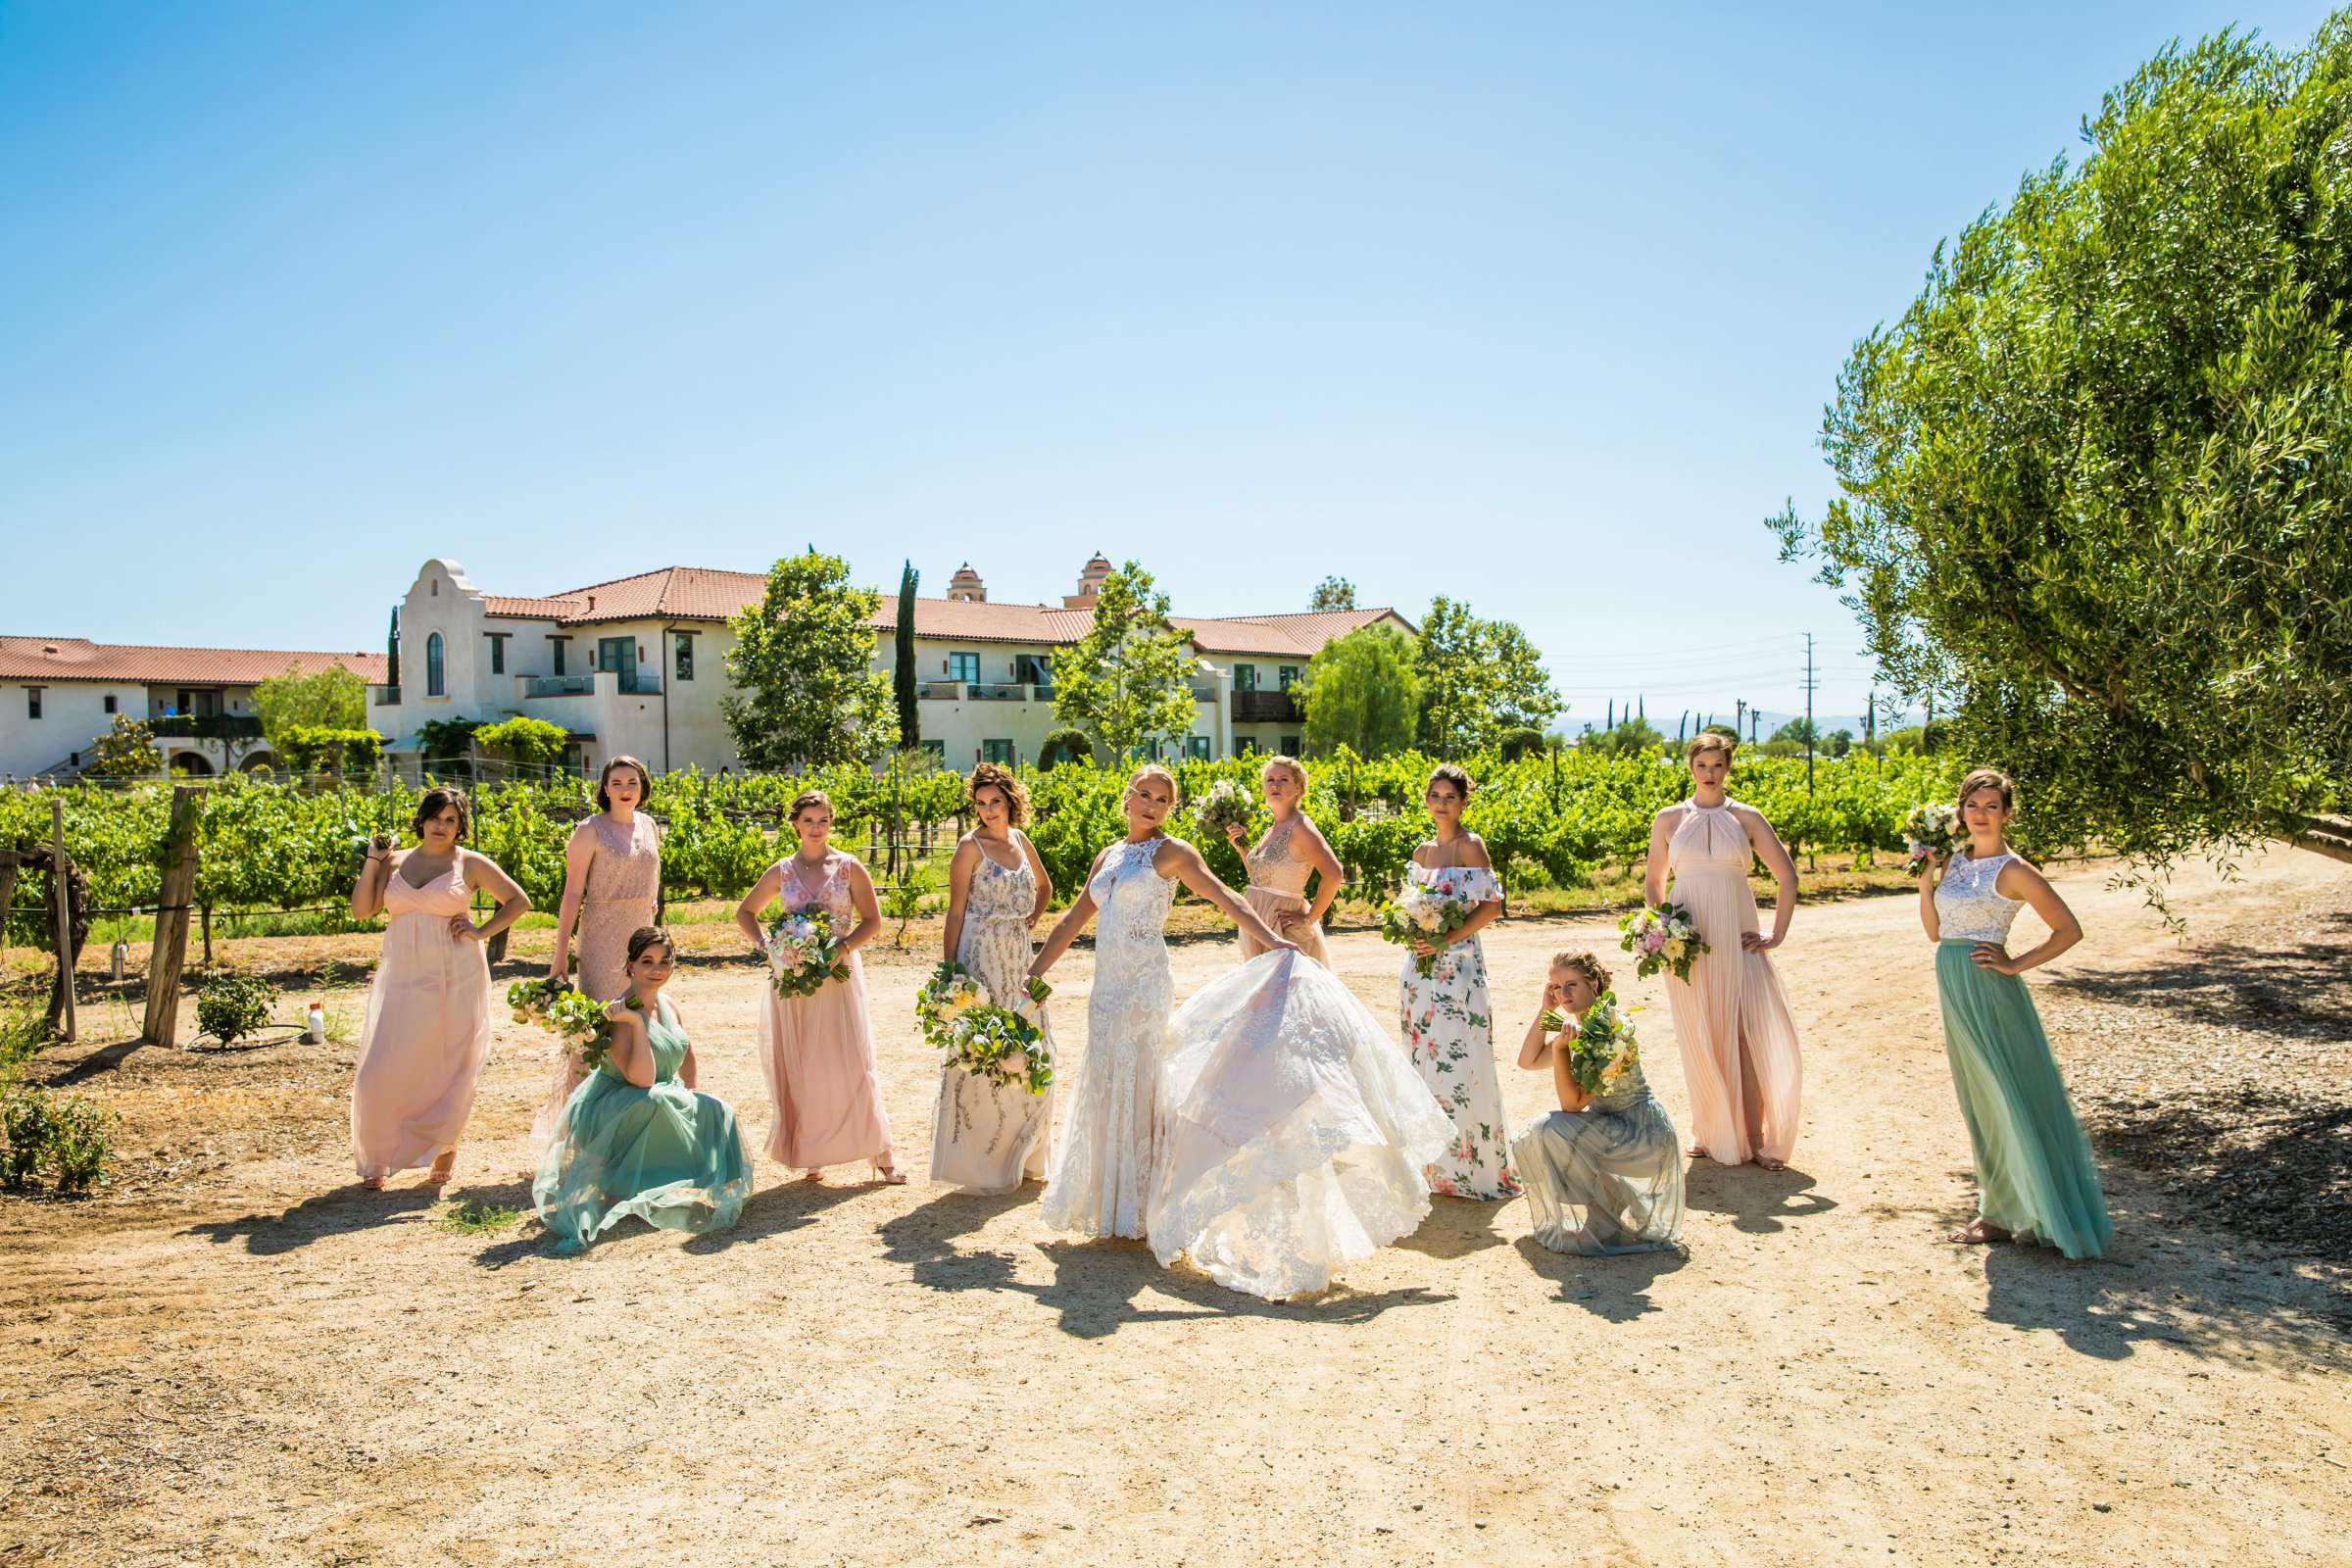 Ponte Estate Winery Wedding, Kelsey and Andrew Wedding Photo #47 by True Photography